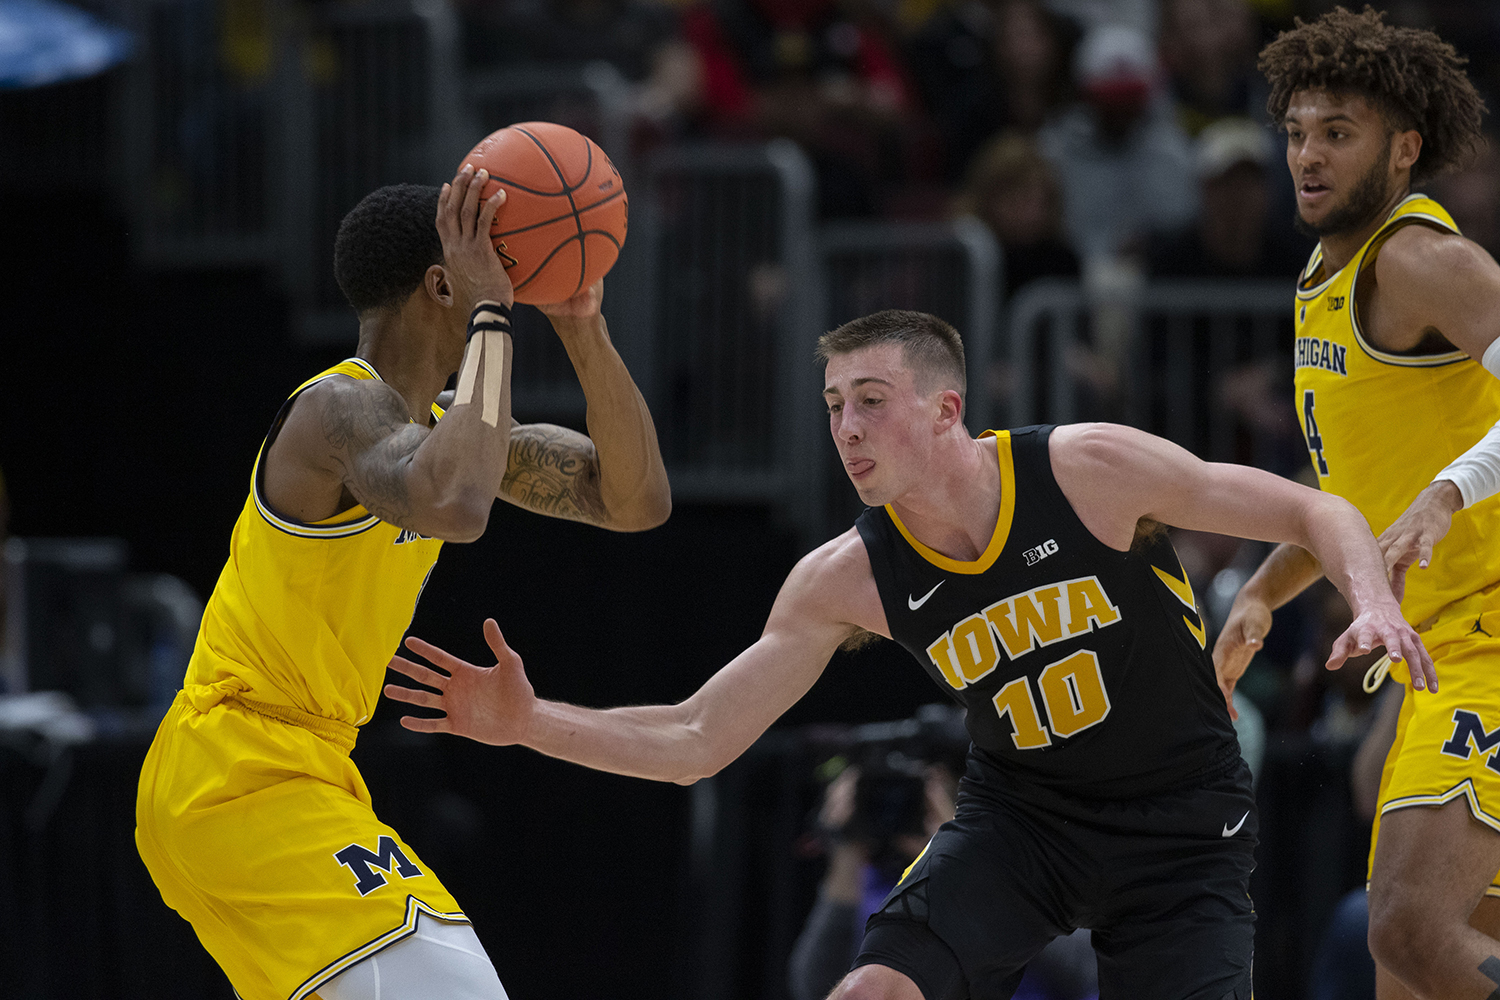 Iowa%27s+Joe+Wieskamp+guards+Michigan+guard+Charles+Matthews+during+the+Iowa%2FMichigan+Big+Ten+Tournament+men%27s+basketball+game+in+the+United+Center+in+Chicago+on+Friday%2C+March+15%2C+2019.+The+Wolverines+defeated+the+Hawkeyes%2C+74-53.+